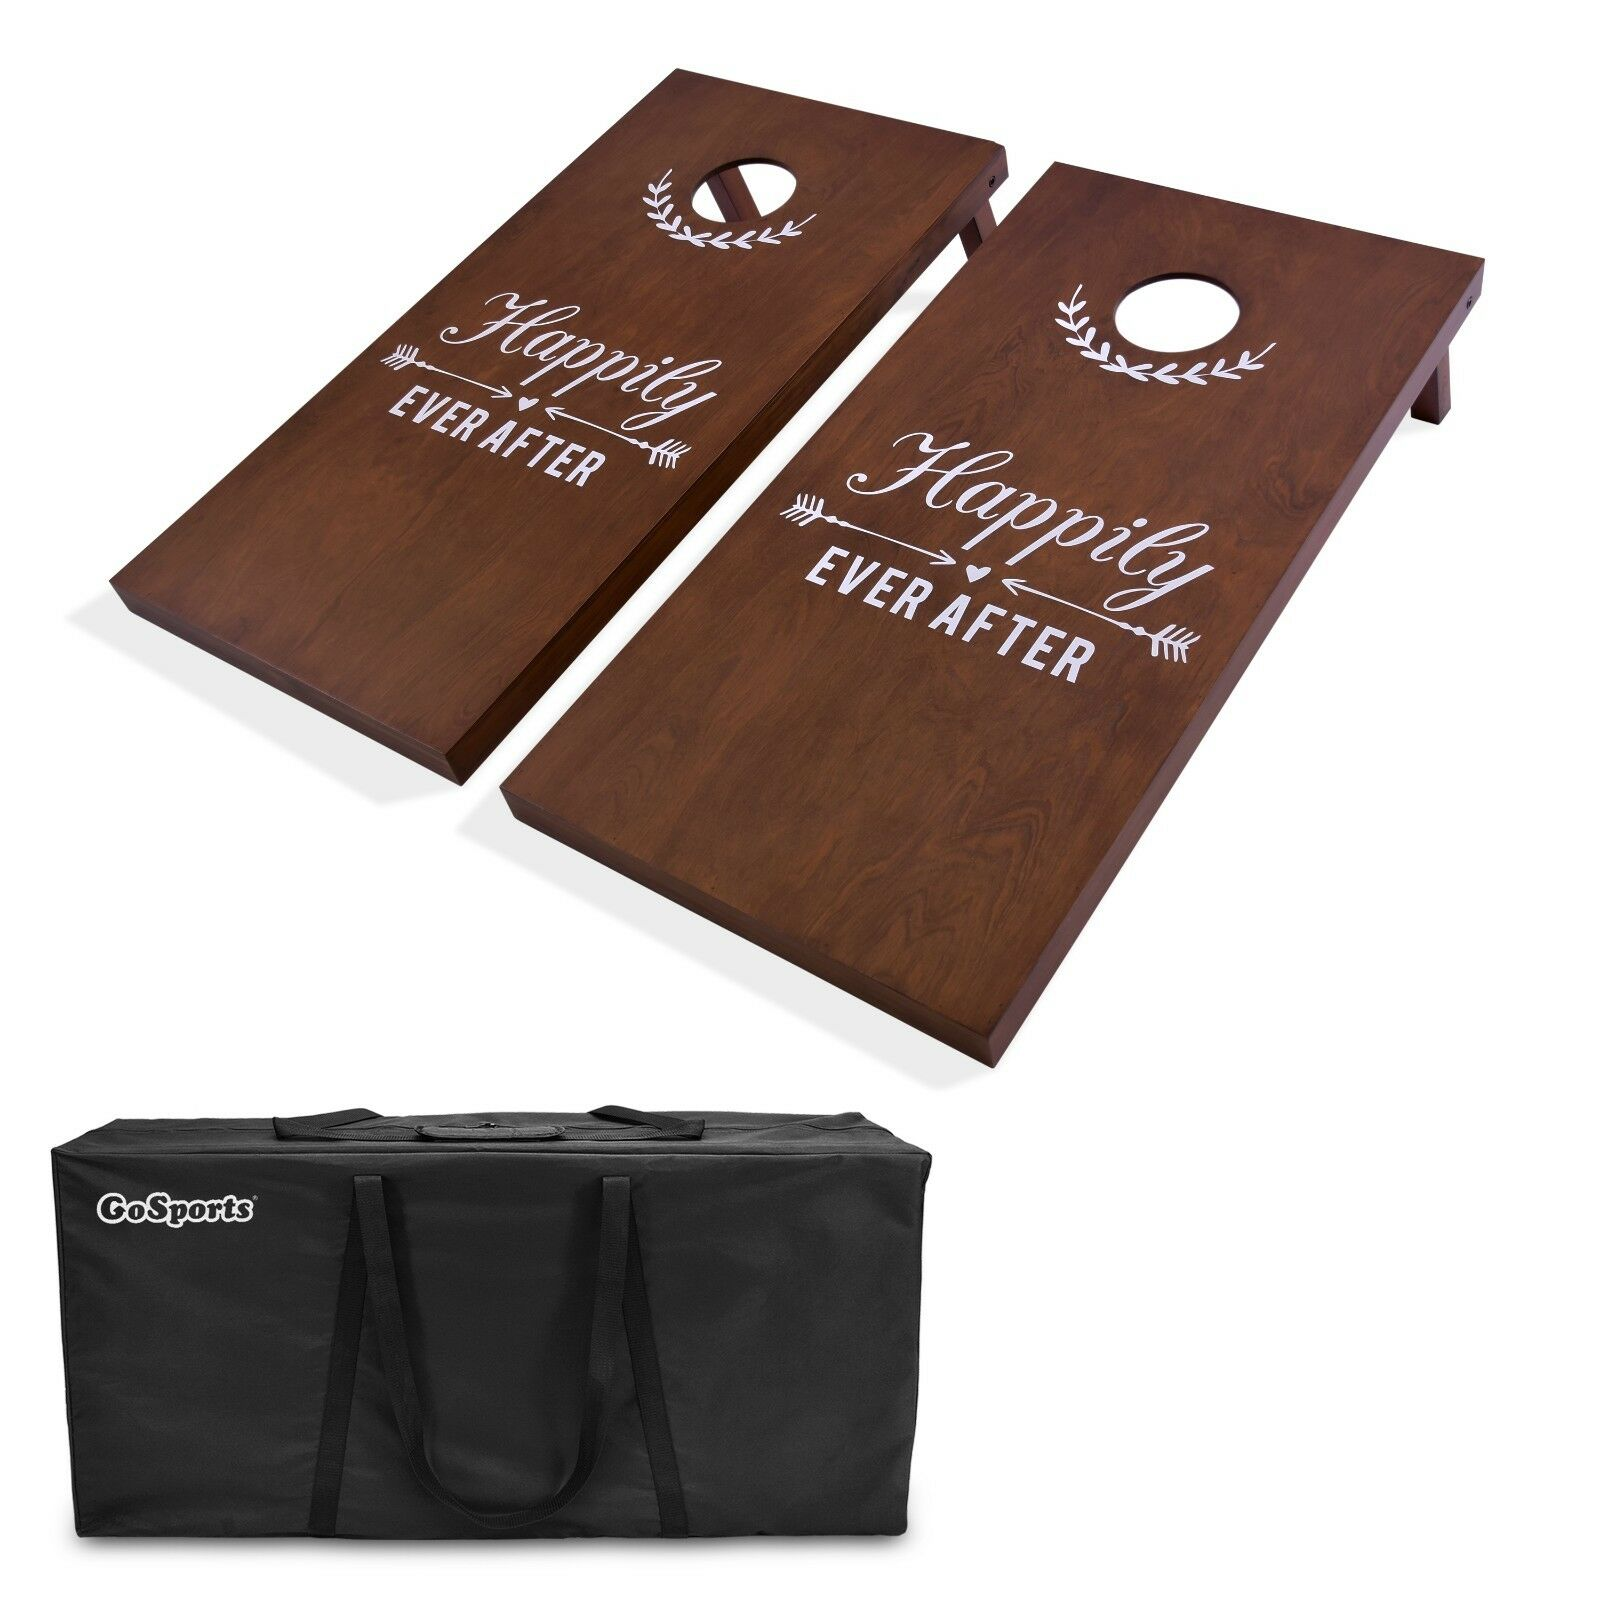 Gosports Wedding Couple Cornhole Set   Regulation 4'x2' with Solid Stained Wood